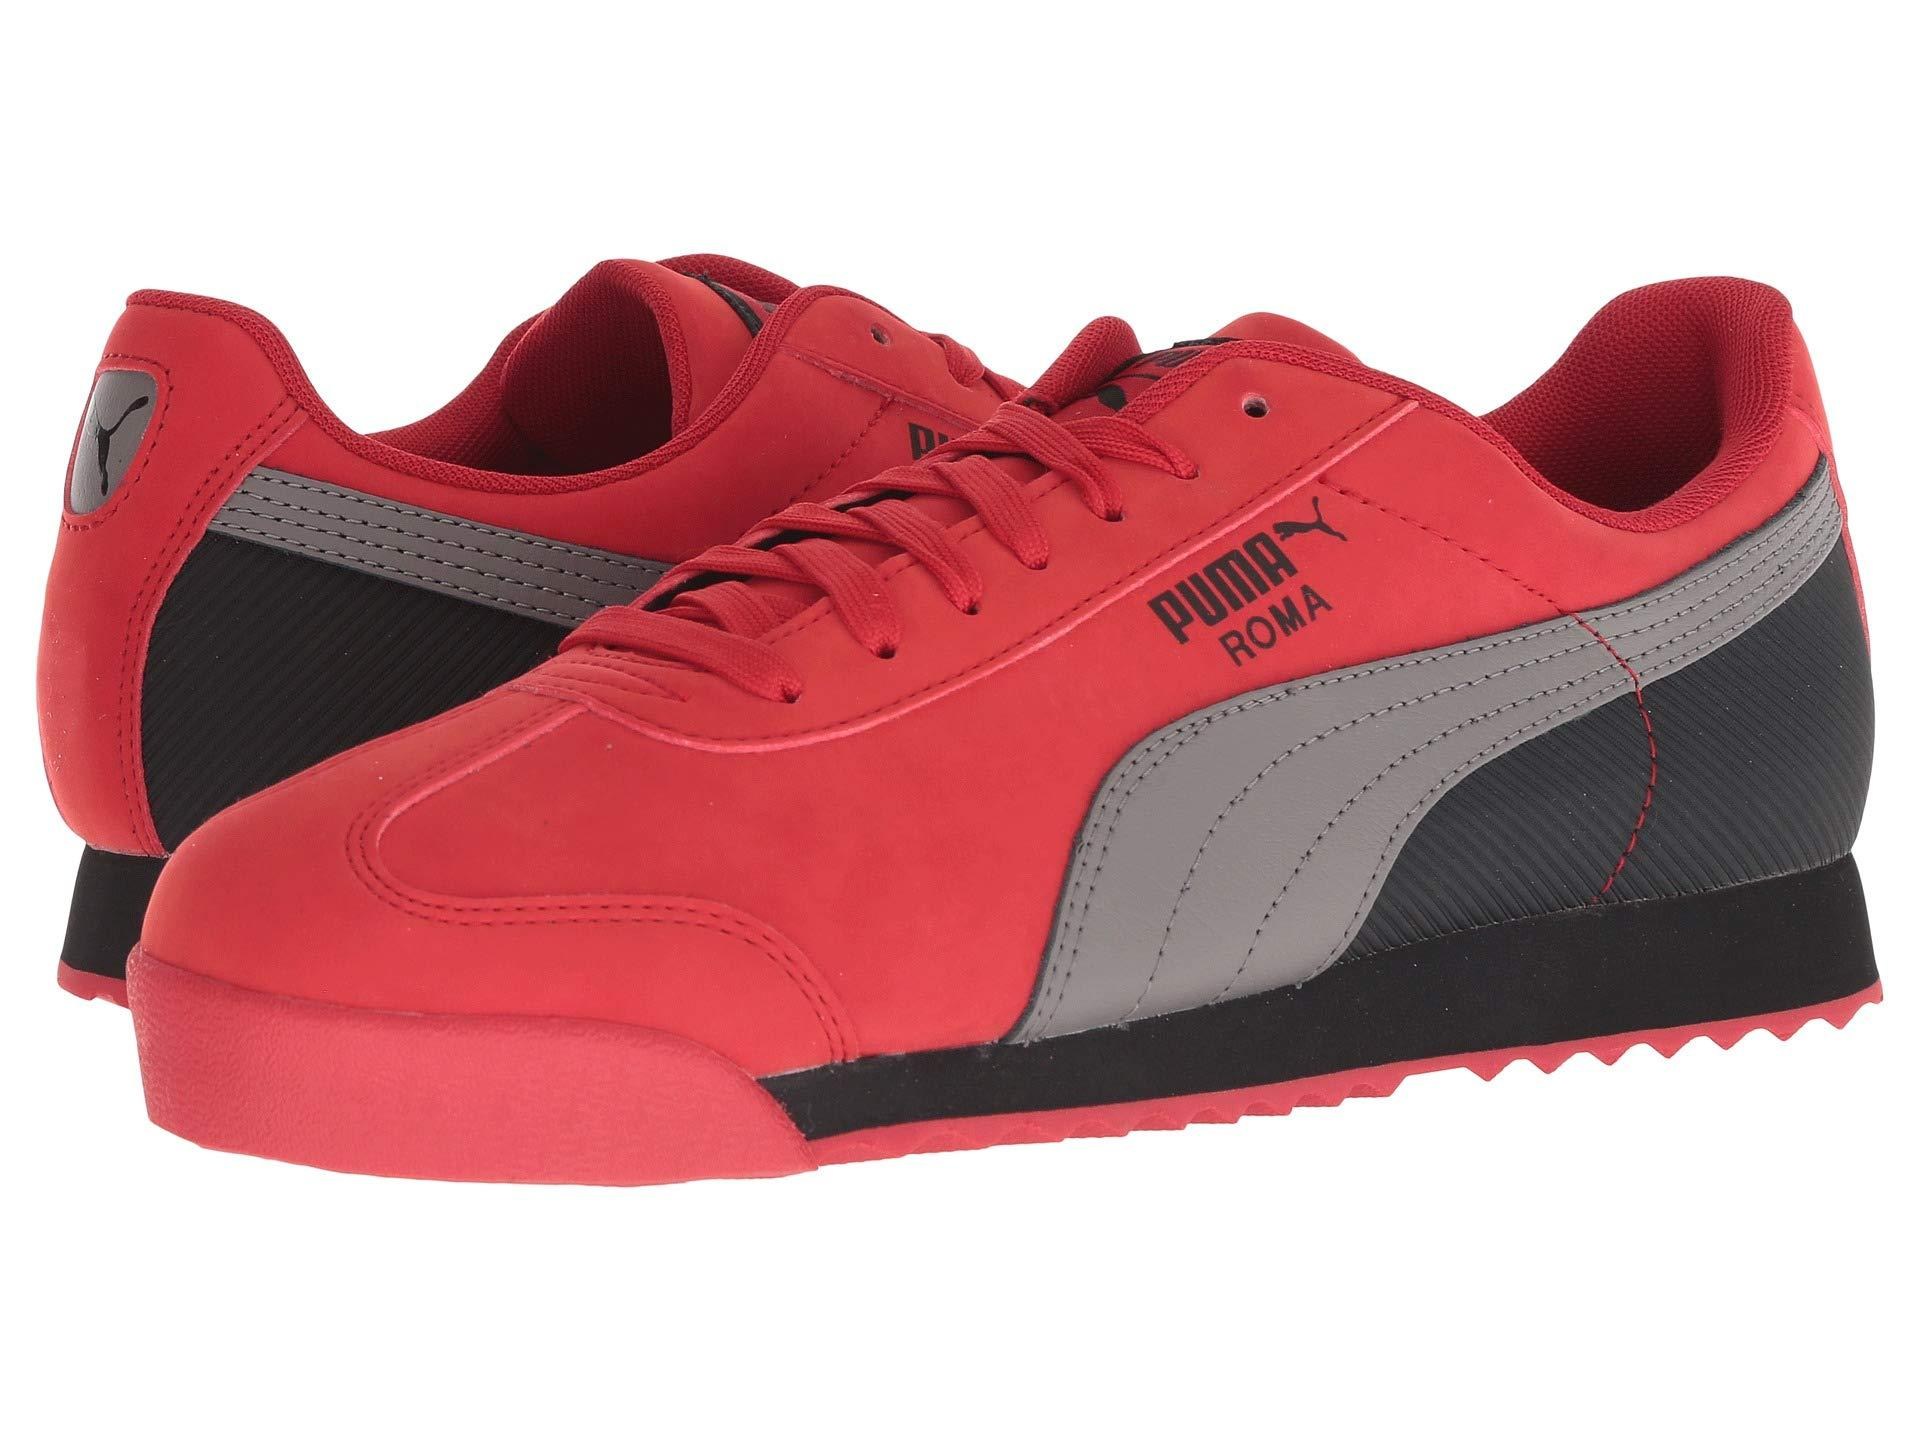 4241957fda6e70 Lyst - PUMA Roma Retro Nbk in Red for Men - Save 5%